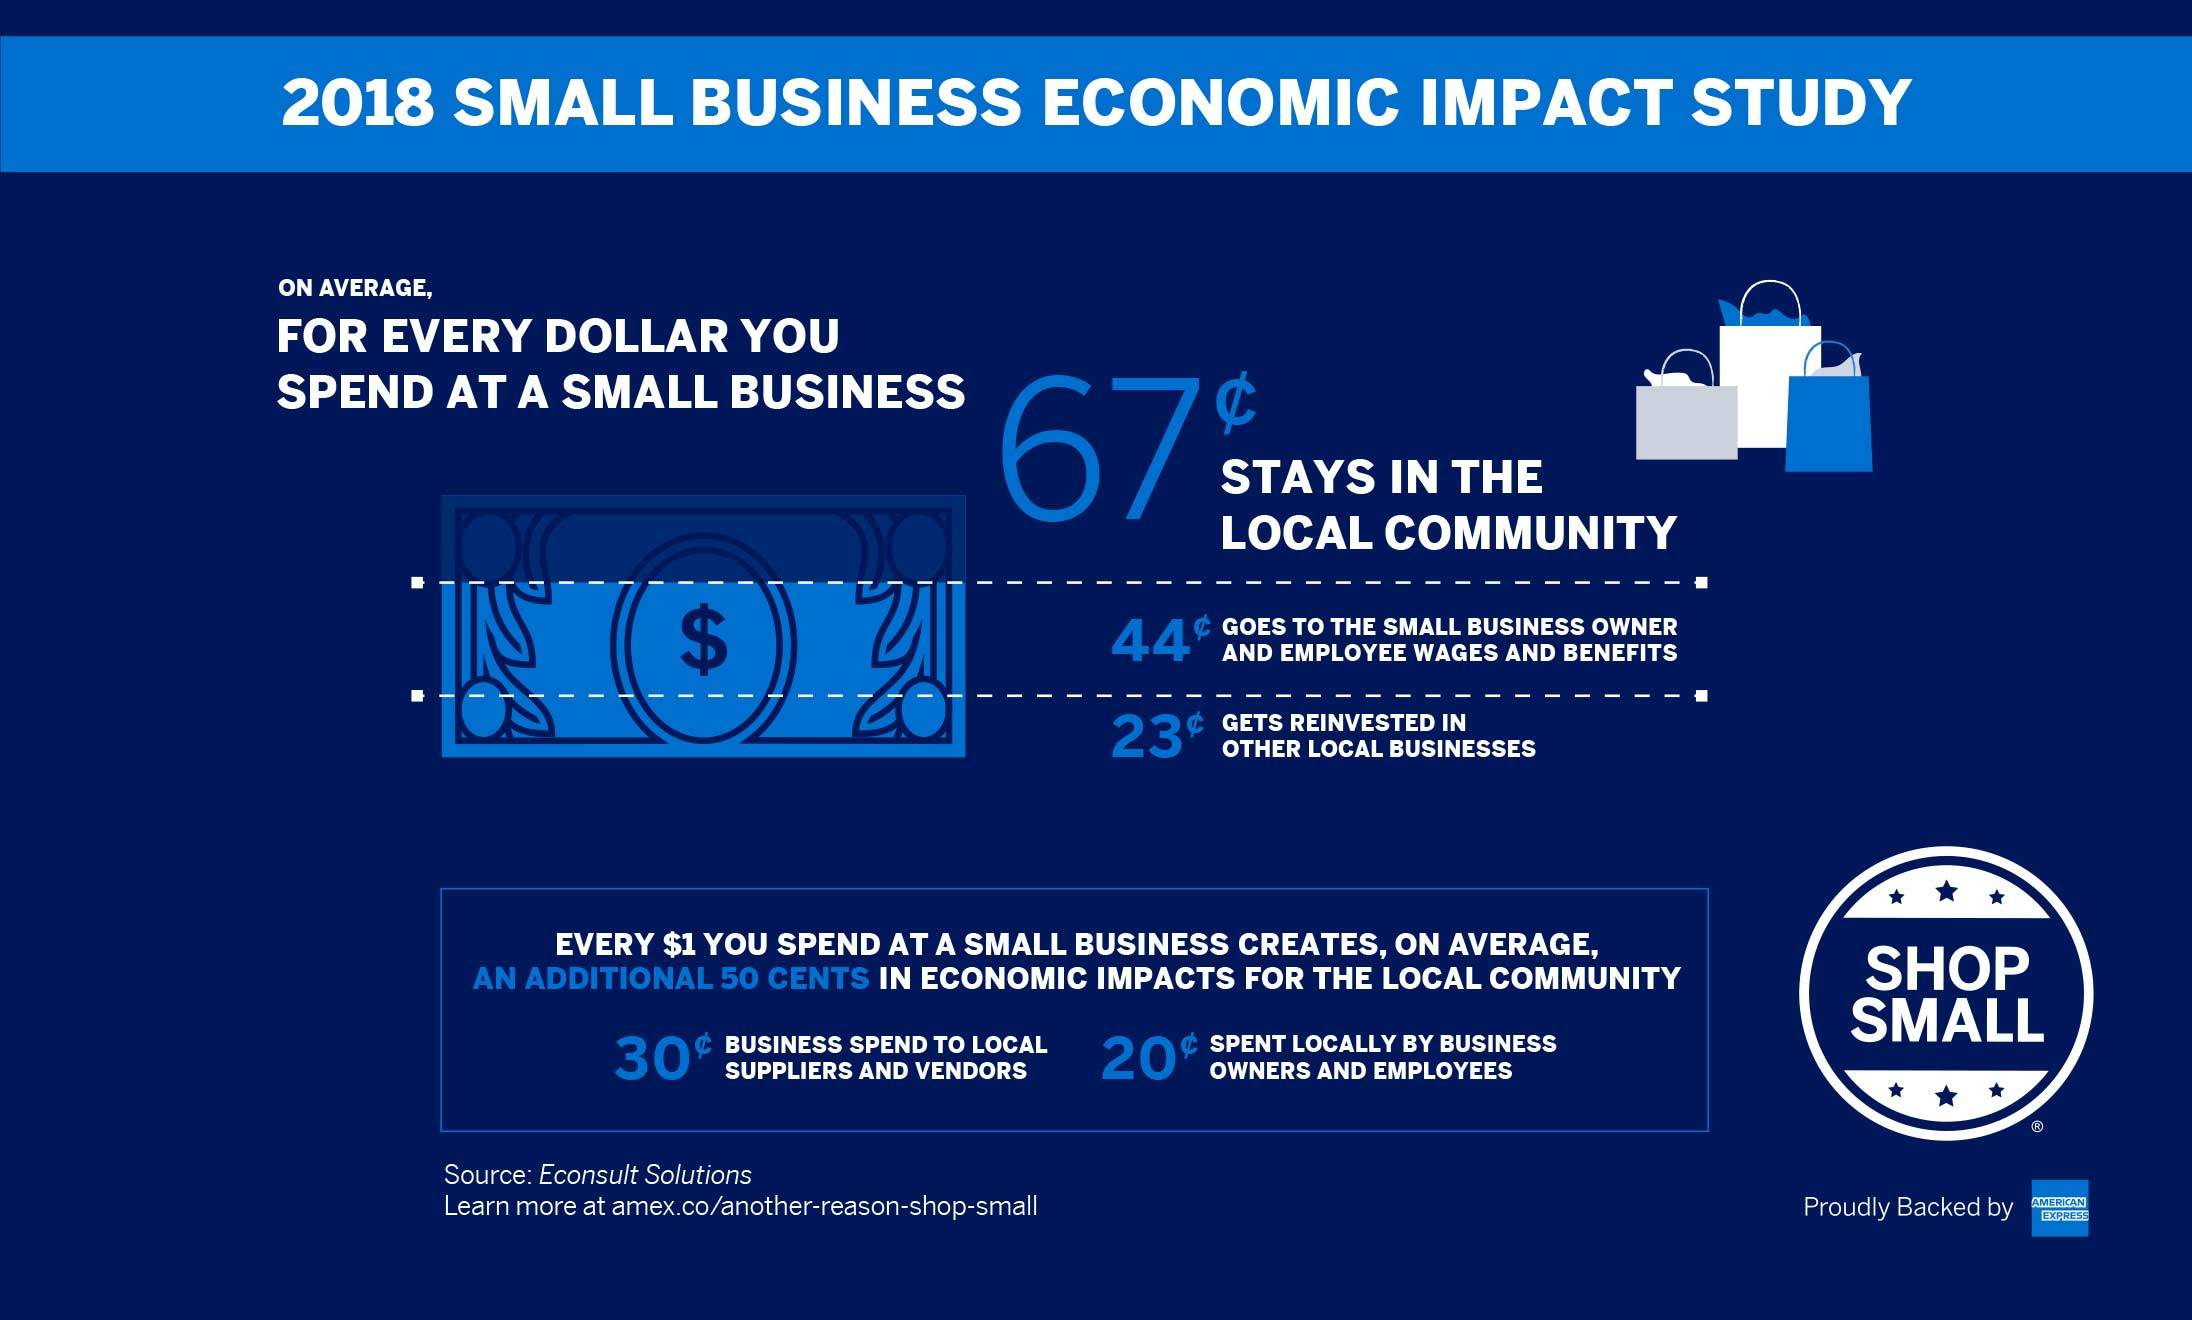 ae2d81861690a Another Reason to Shop Small® on Small Business Saturday ...